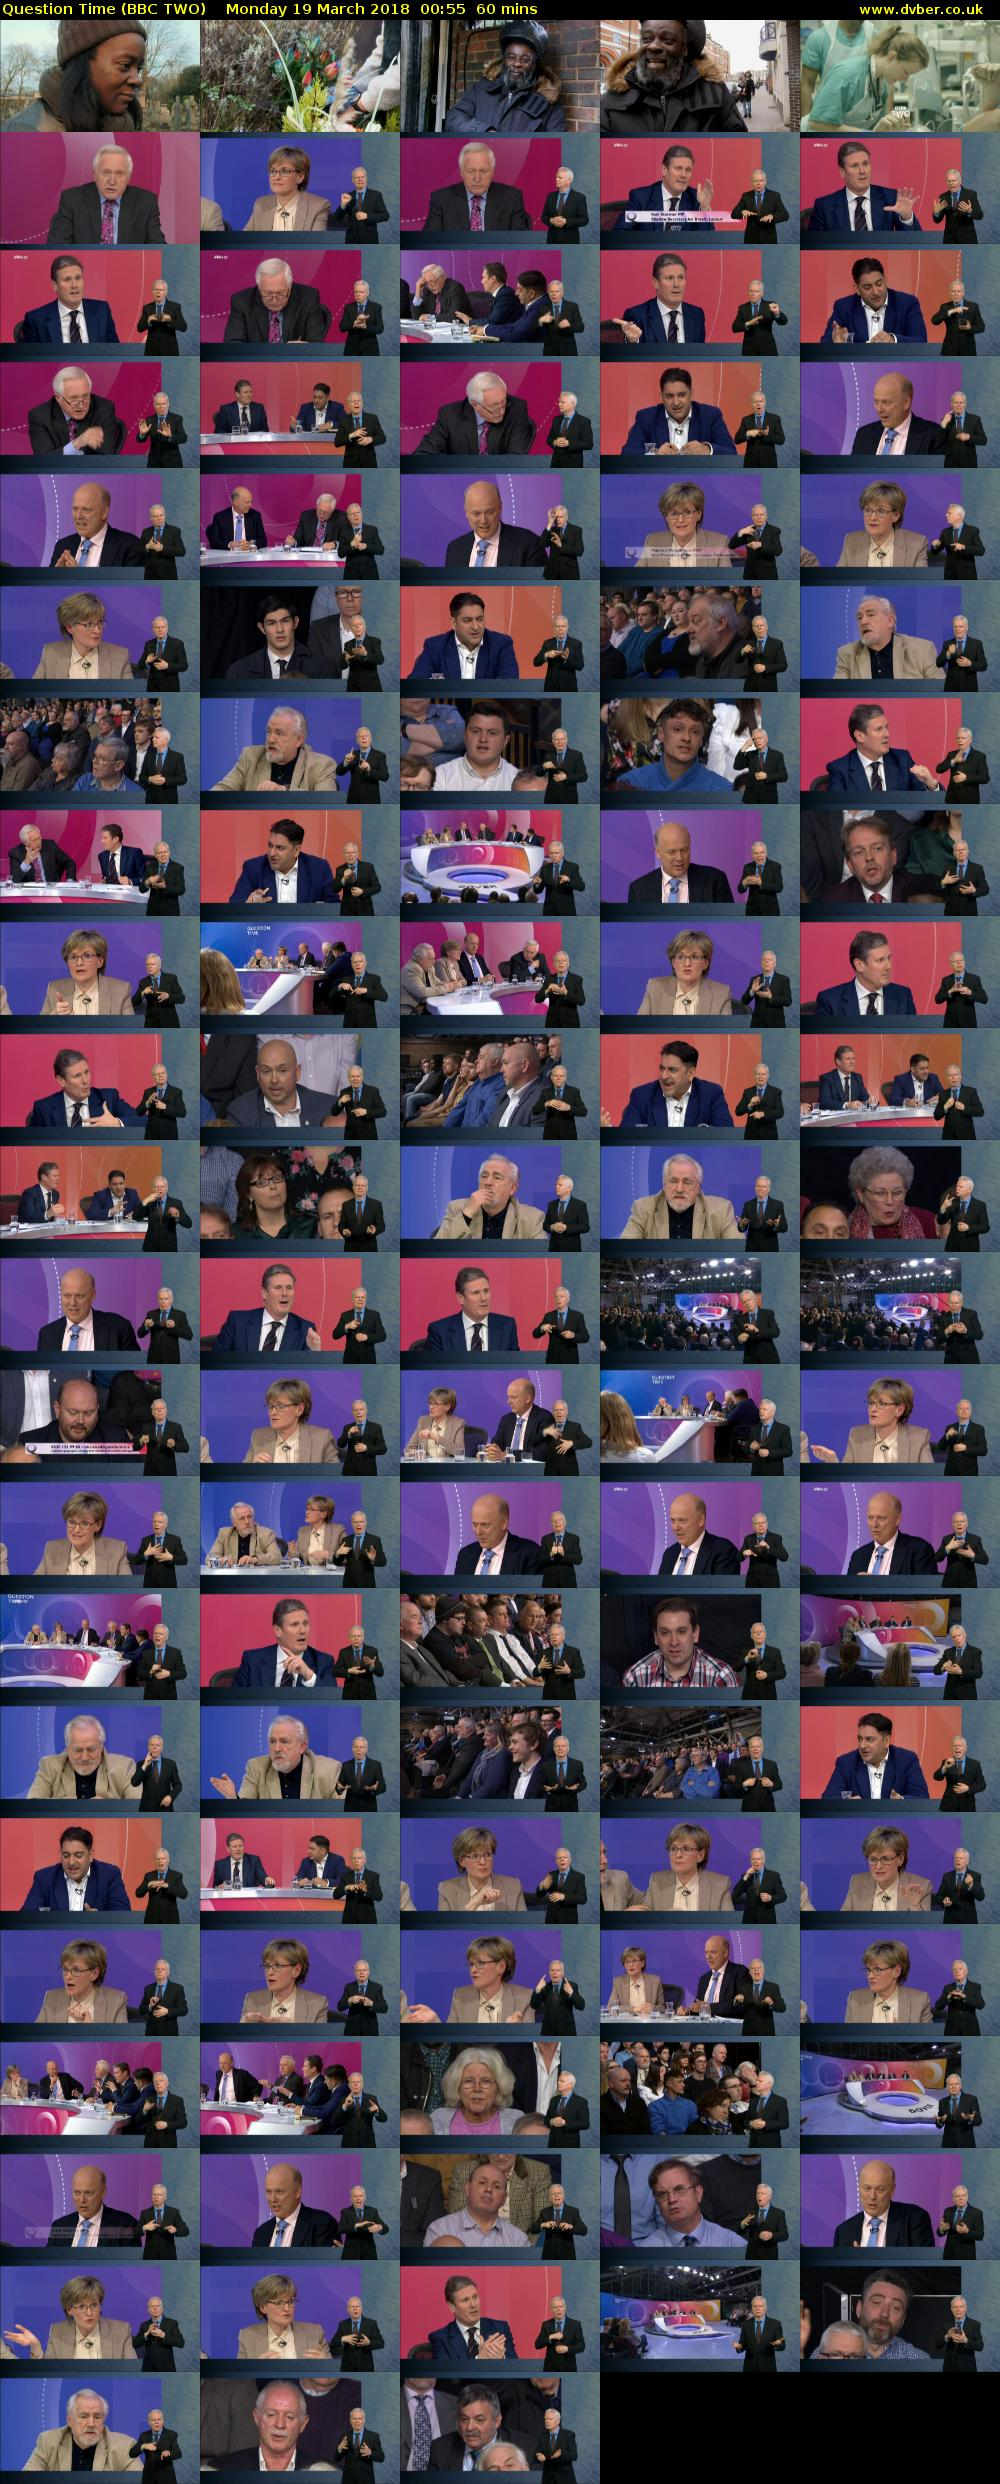 Question Time (BBC TWO) Monday 19 March 2018 00:55 - 01:55